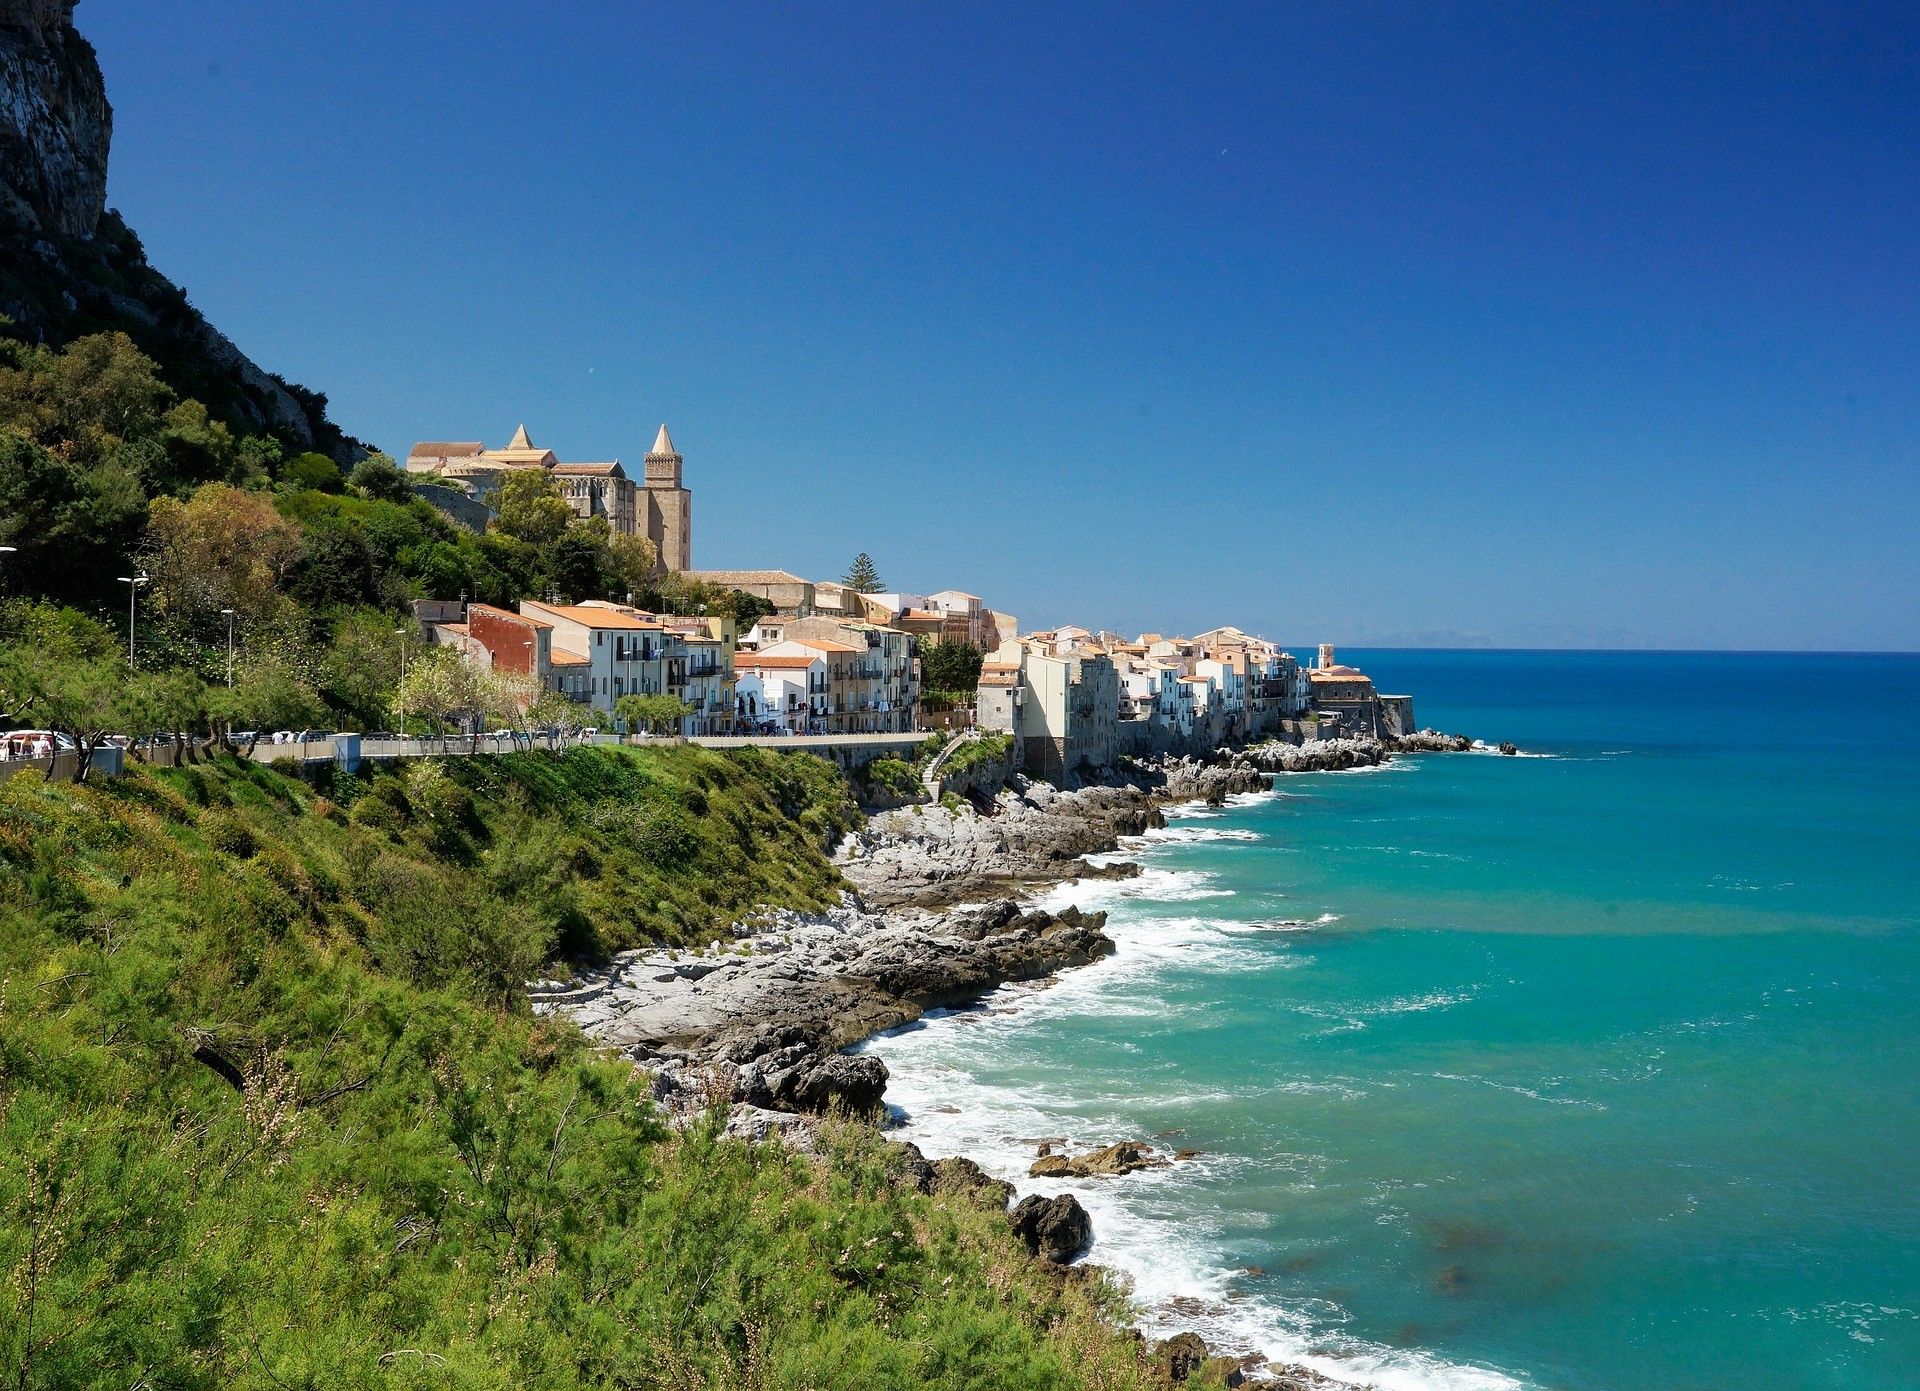 Where is the most beautiful sea in Italy?